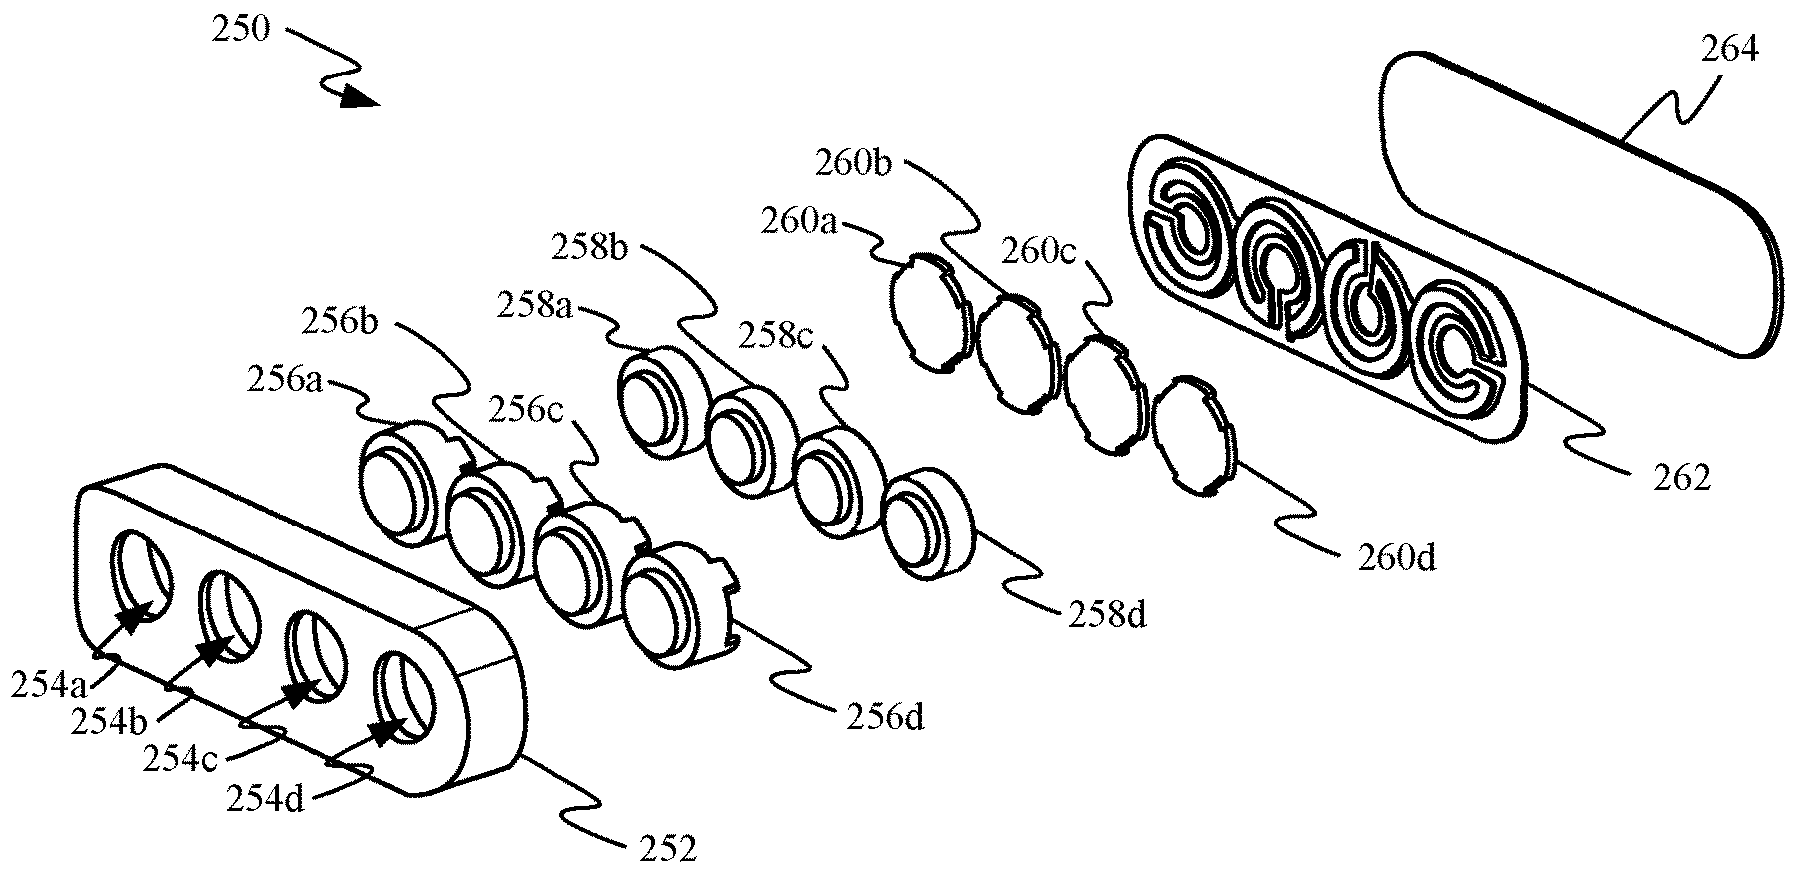 A drawing from Apple's MagSafe patent showing pogo-style connections for power and data